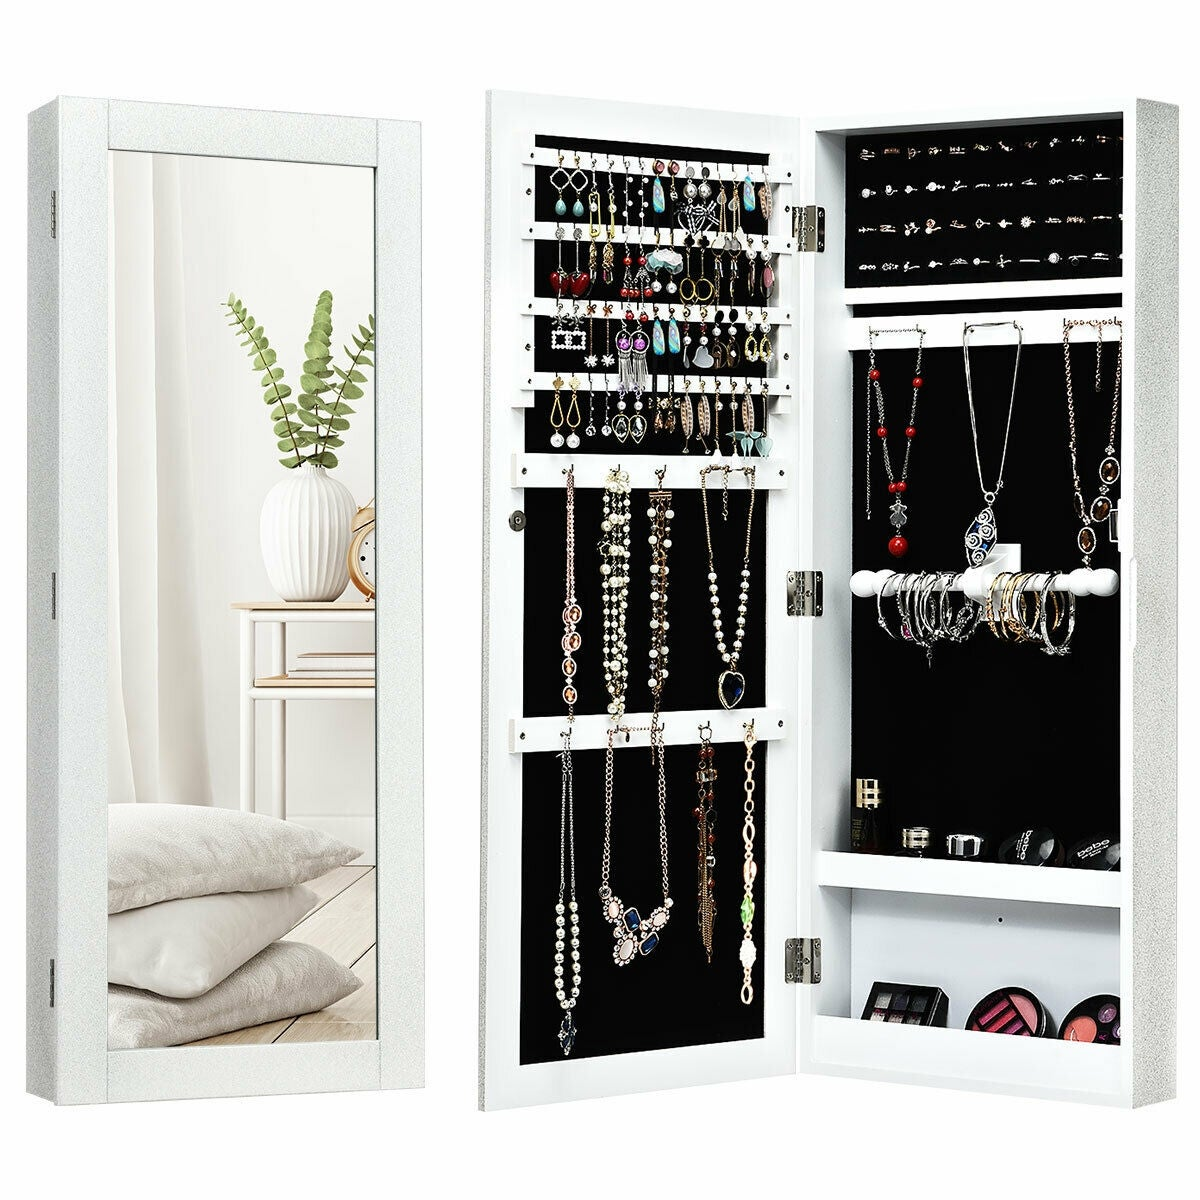 Gymax Jewelry Cabinet Wall Mounted Mirrored Armoire Storage Organizer Overstock 23057252